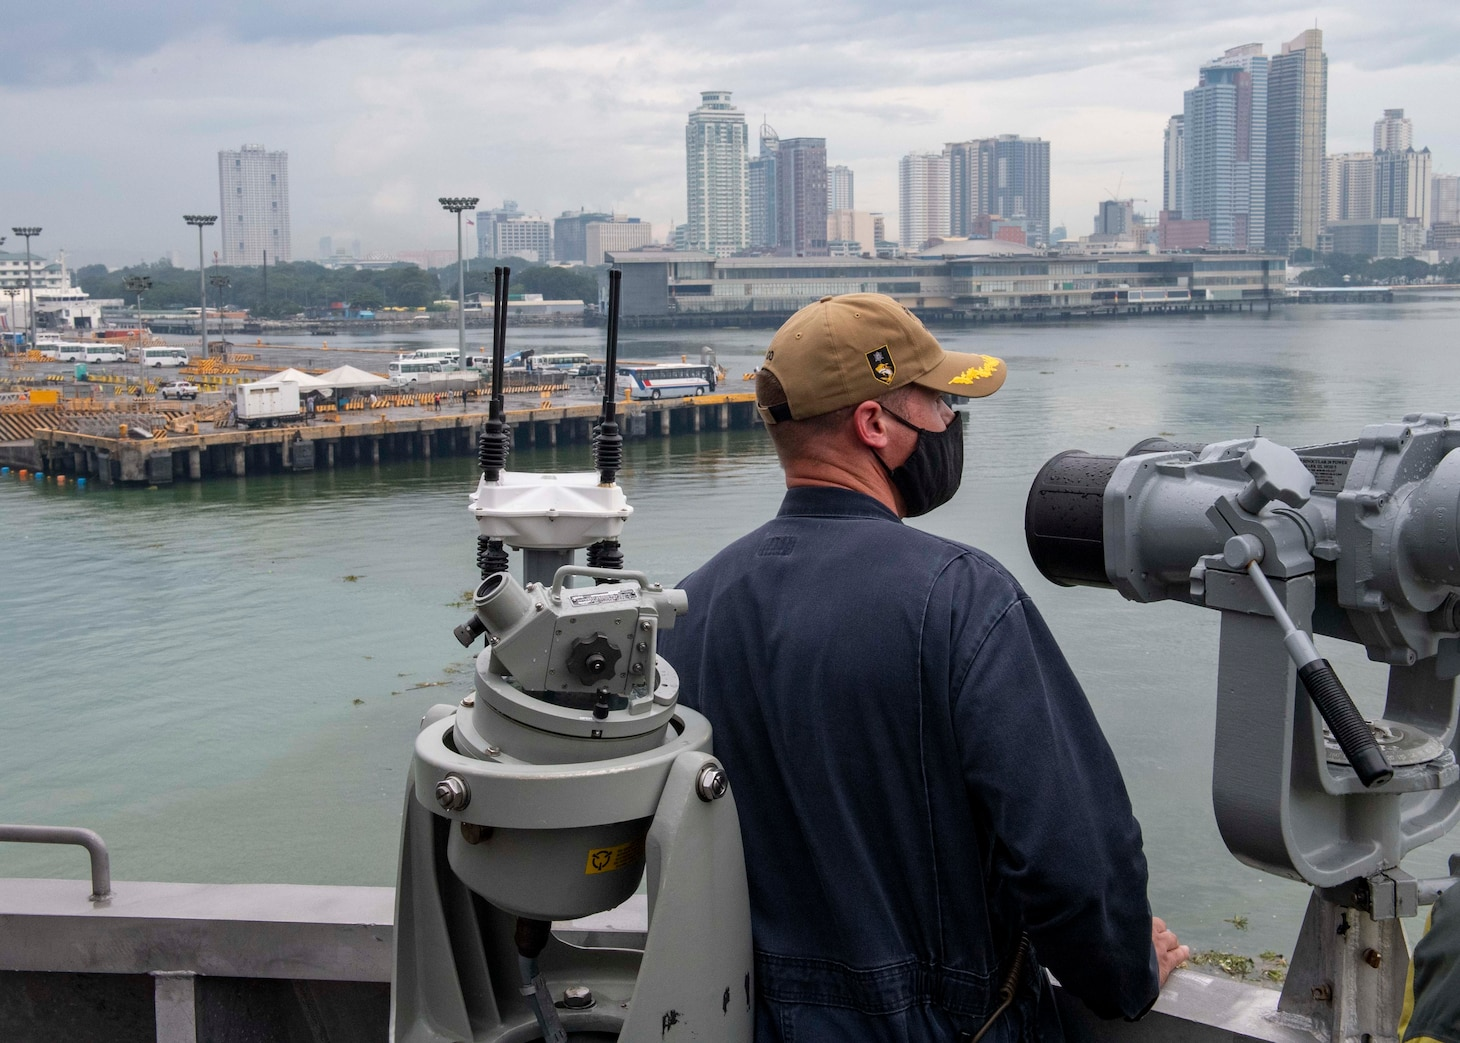 Cmdr. Joseph Burgon, commanding officer of Independence-variant littoral combat ship USS Charleston (LCS 18), looks at the city of Manila from the ship's bridge wing during a contactless port visit, Aug. 17. Charleston, part of Destroyer Squadron Seven, is on a rotational deployment operating in the U.S. 7th Fleet area of operation to enhance interoperability with partners and serve as a ready-response force in support of a free and open Indo-Pacific region.